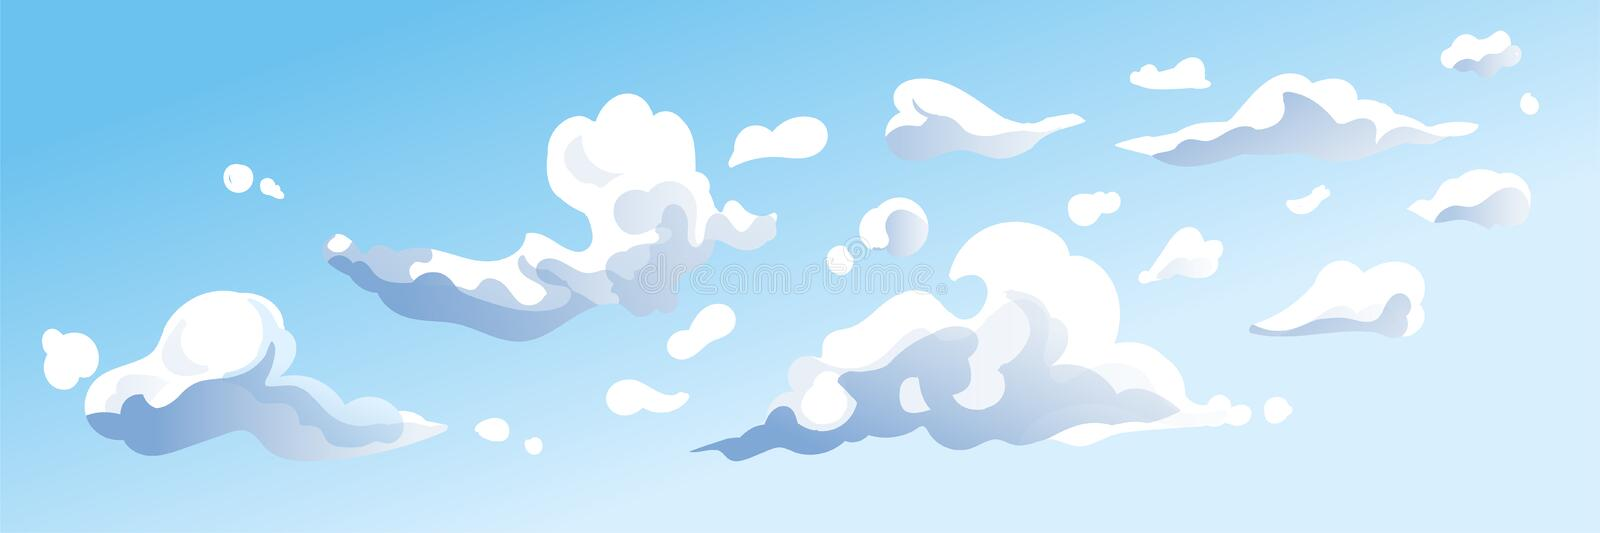 Clouds in the sky - abstract blue background. clear panorama. dream, future, climate and weather vector illustration royalty free illustration